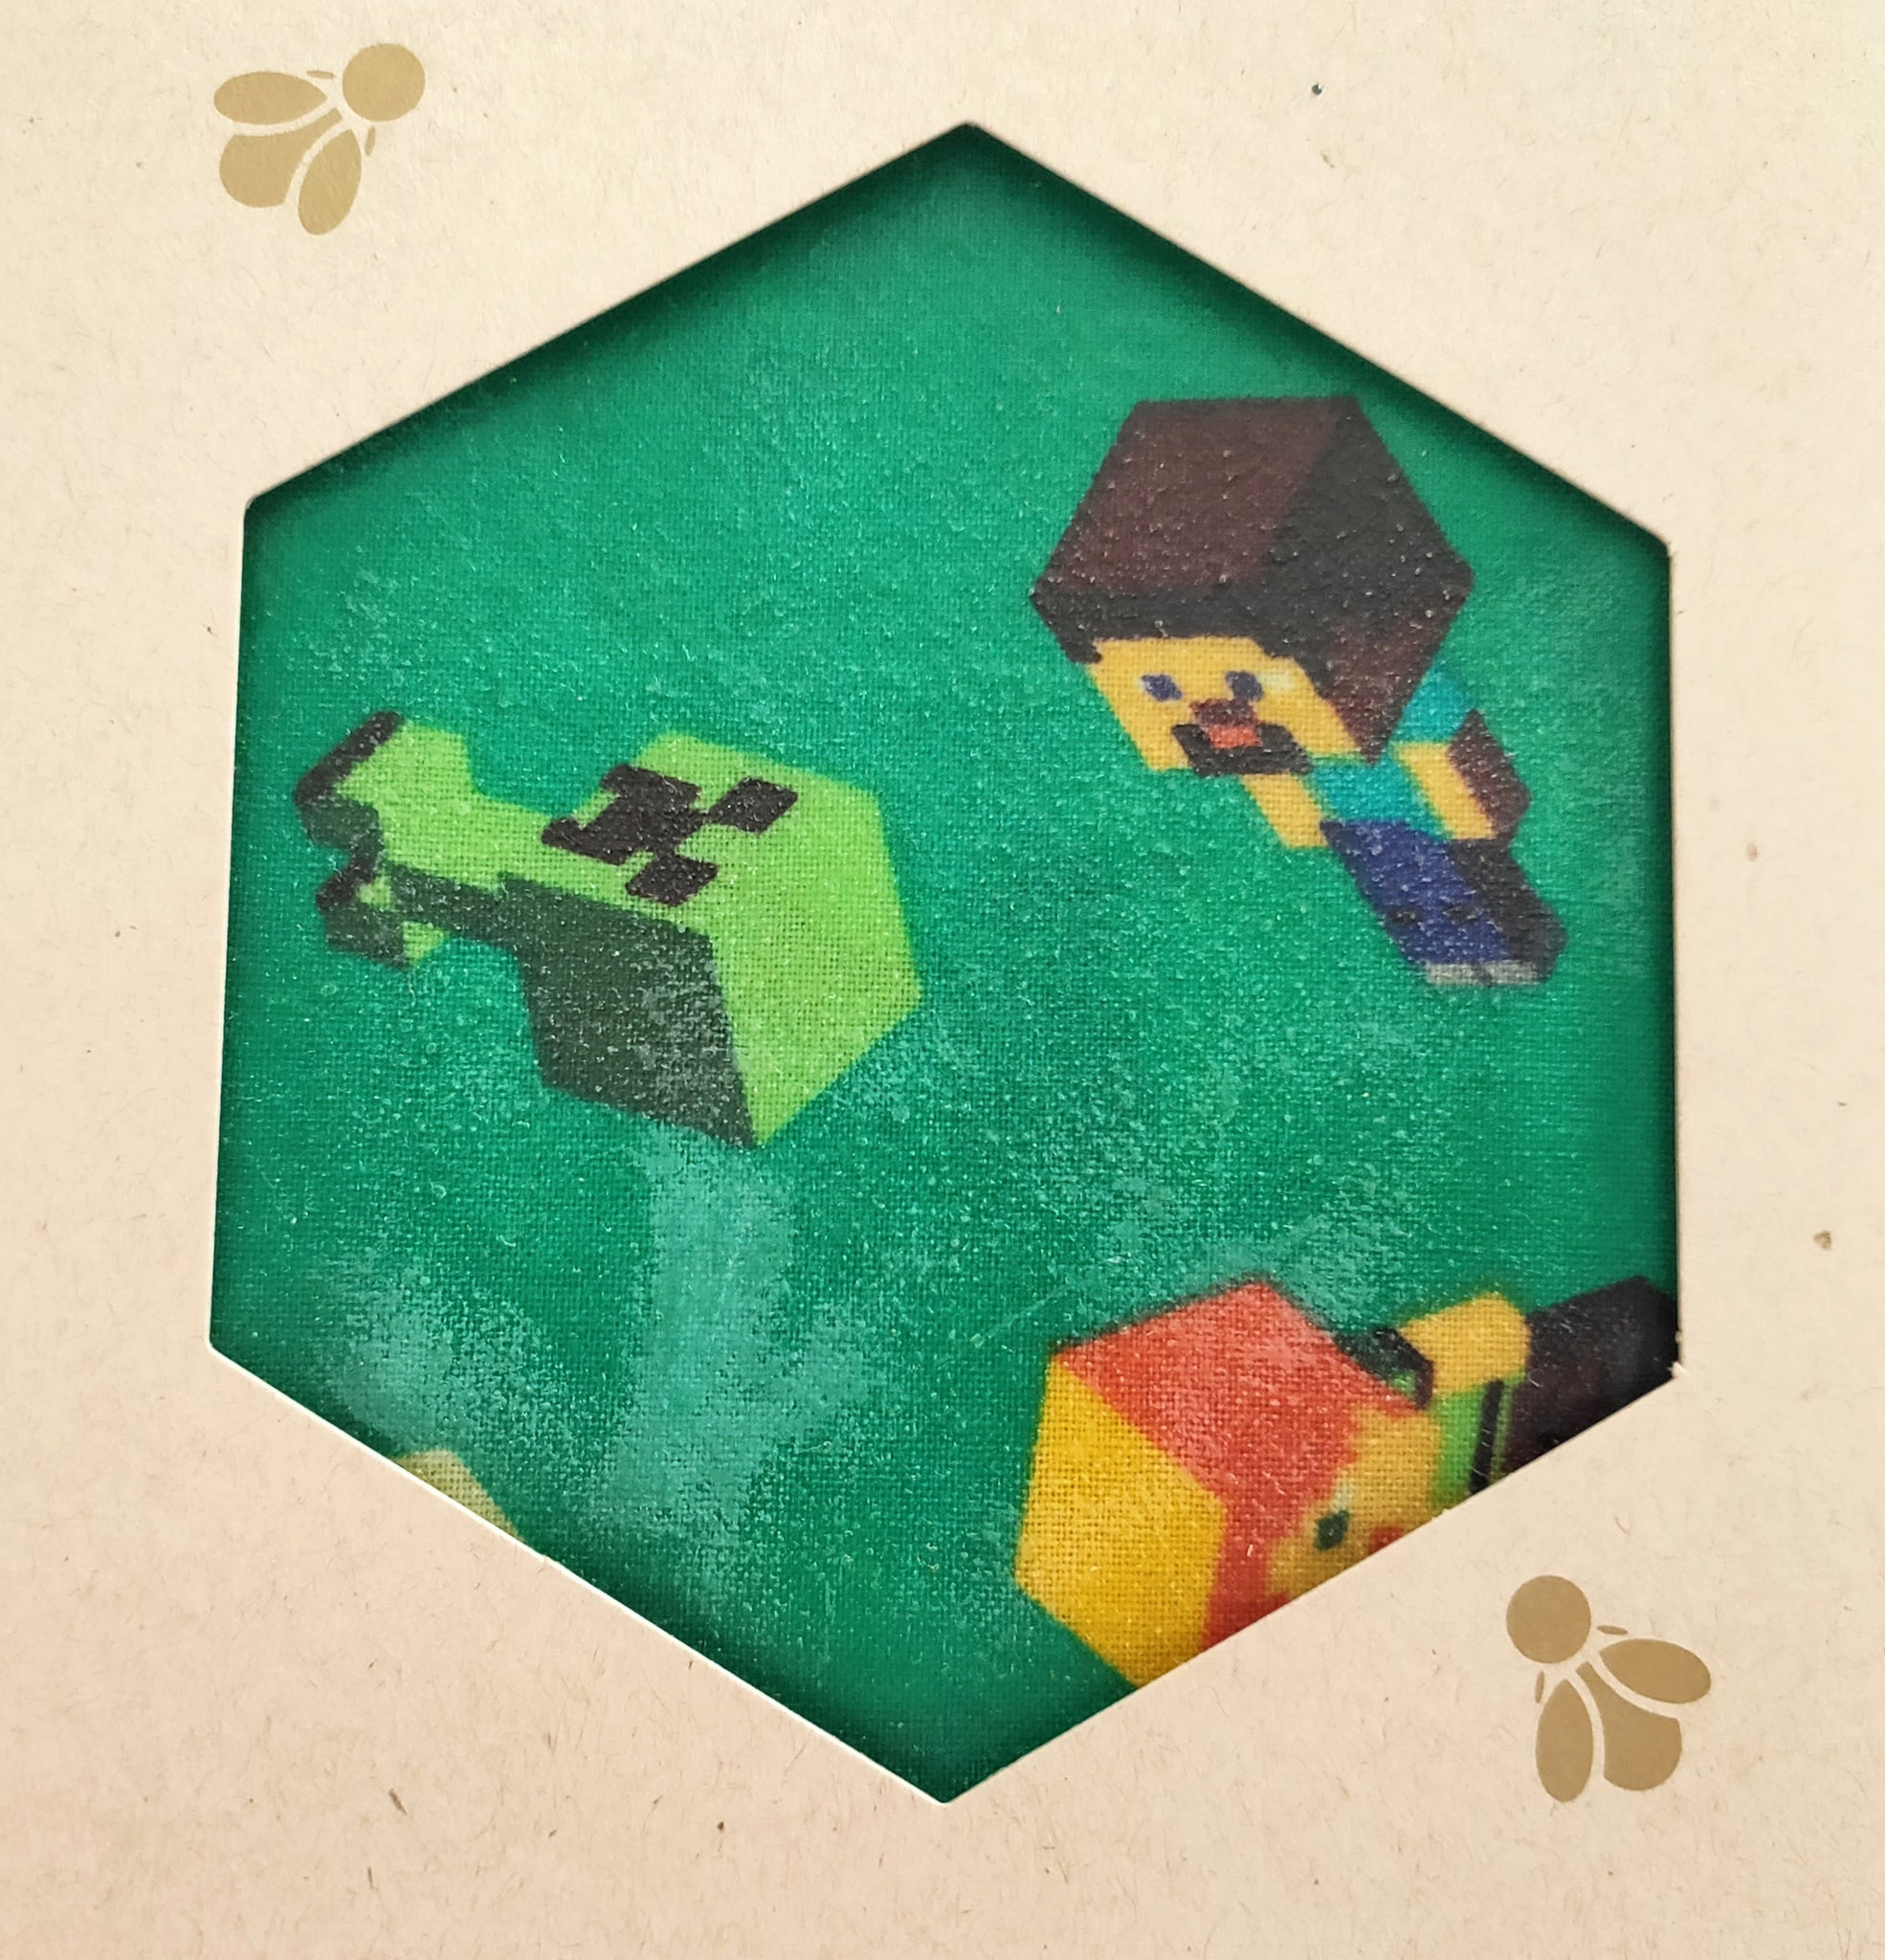 Minecraft - Beeswax Foodwraps - Sandwich Size - 2 Pack